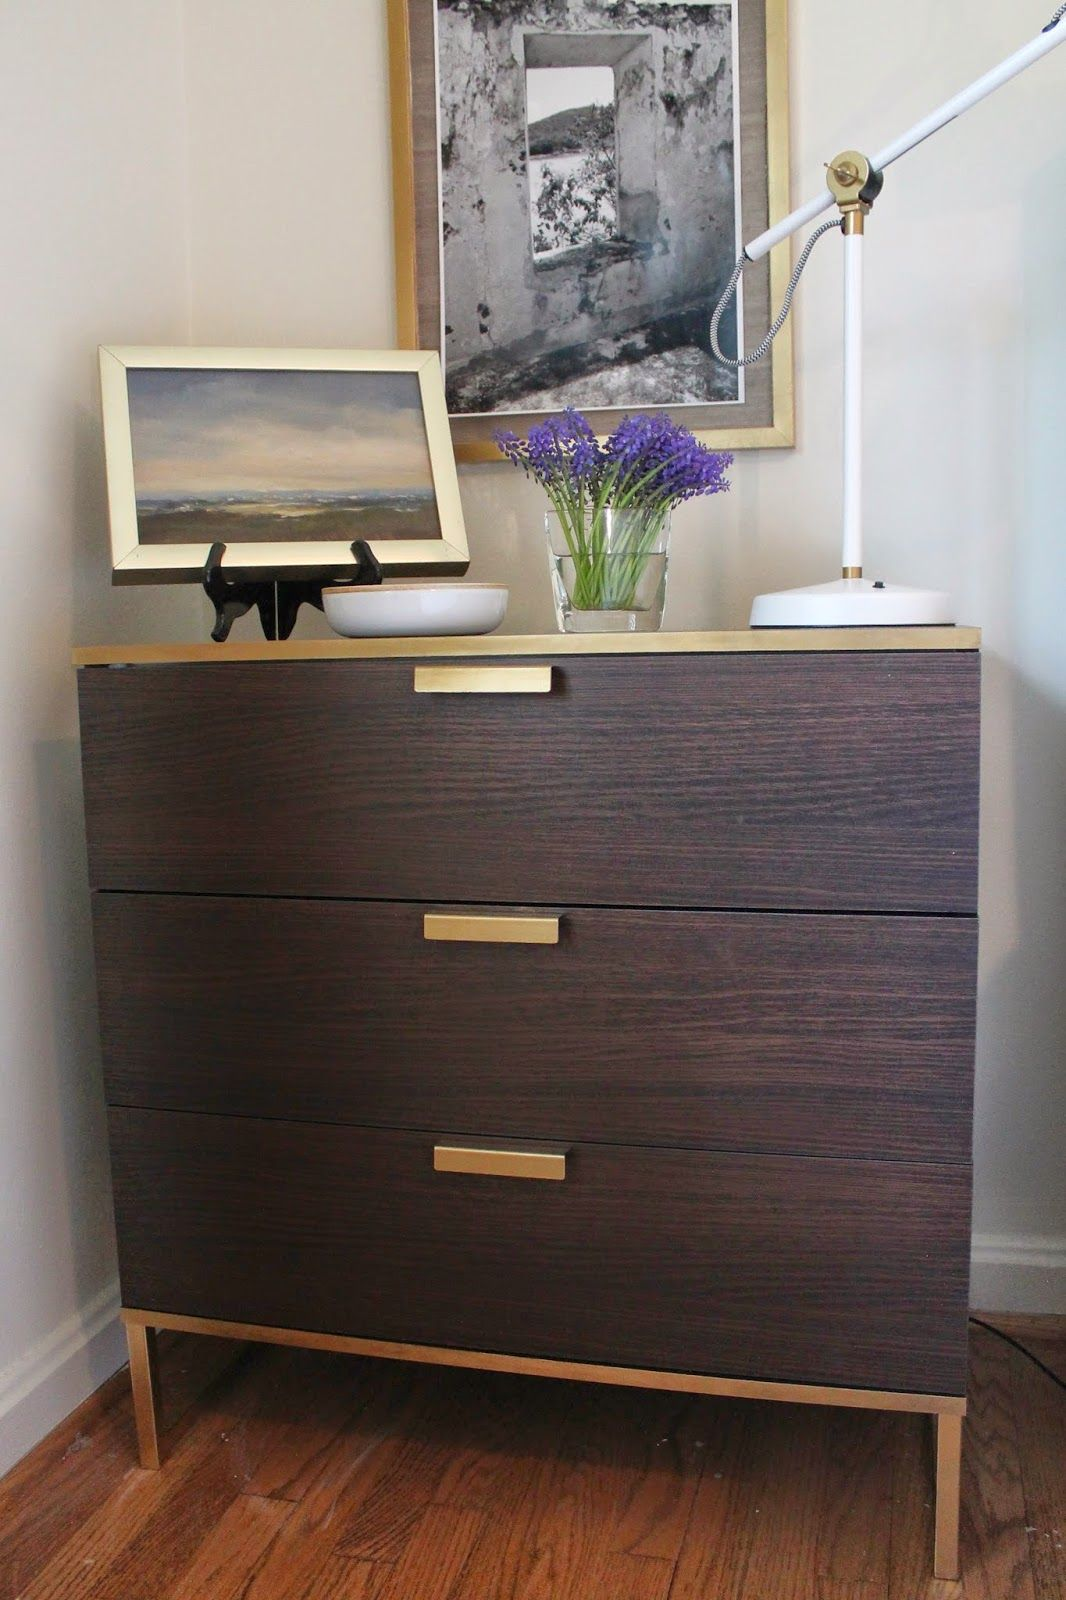 The Nightstand Is A Mini Ikea Hack Of The Trysil Dresser